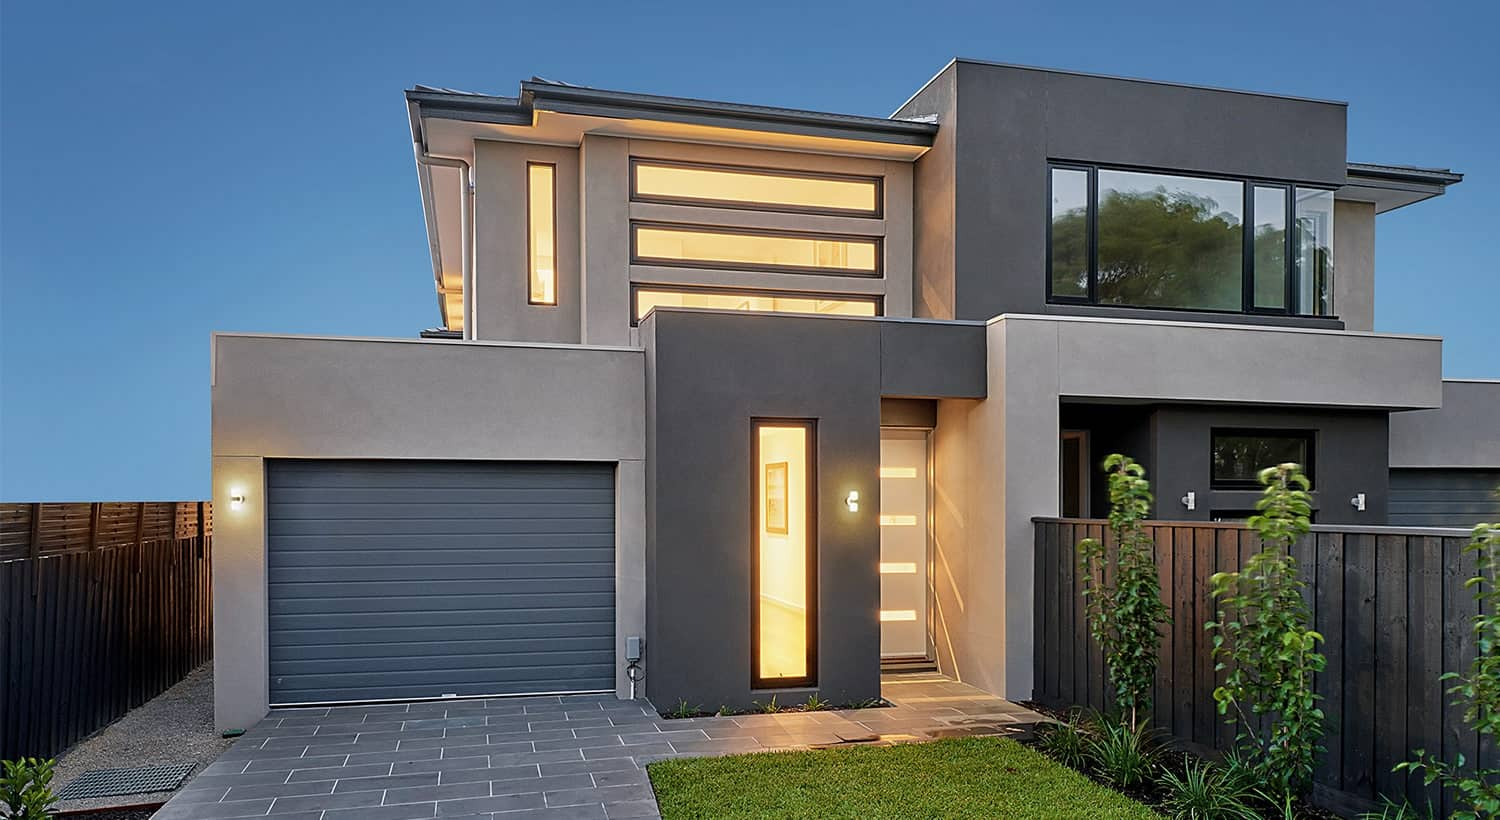 Modern House Exterior Design with Pictures. Mix of concrete surfaces of the house with narrow windows and doors